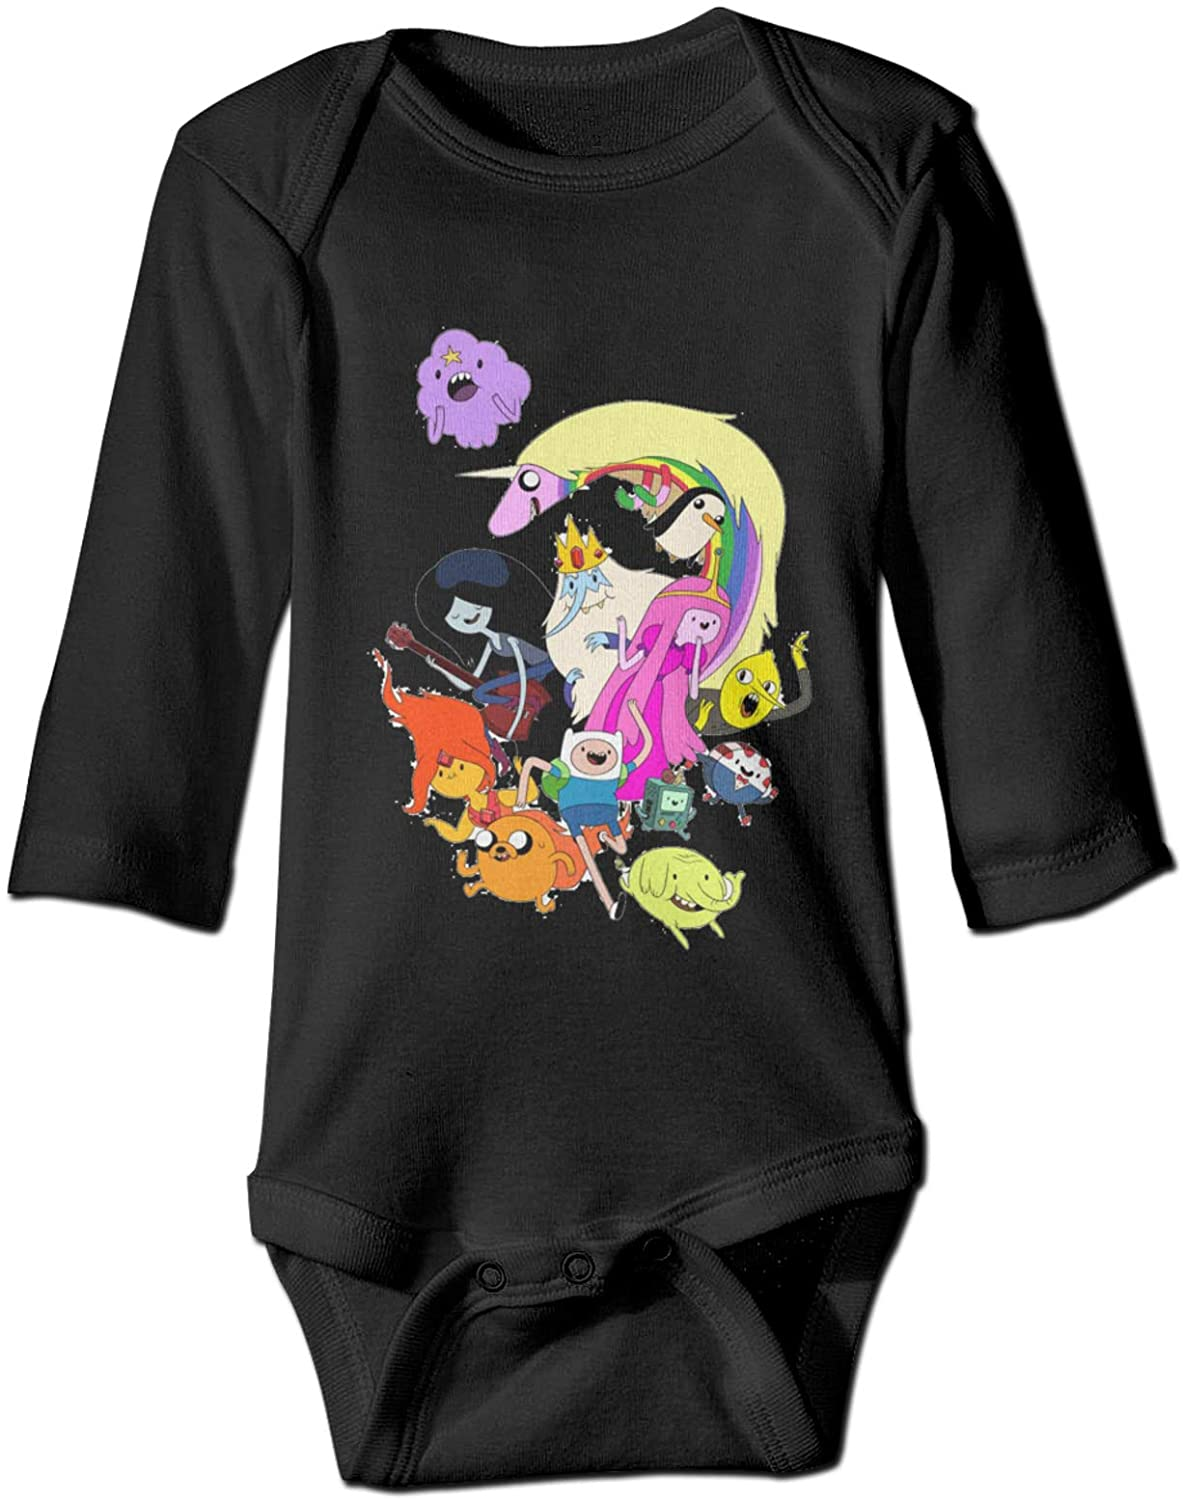 Adventure Time Baby Home Sleeve Casual Climbing Clothes